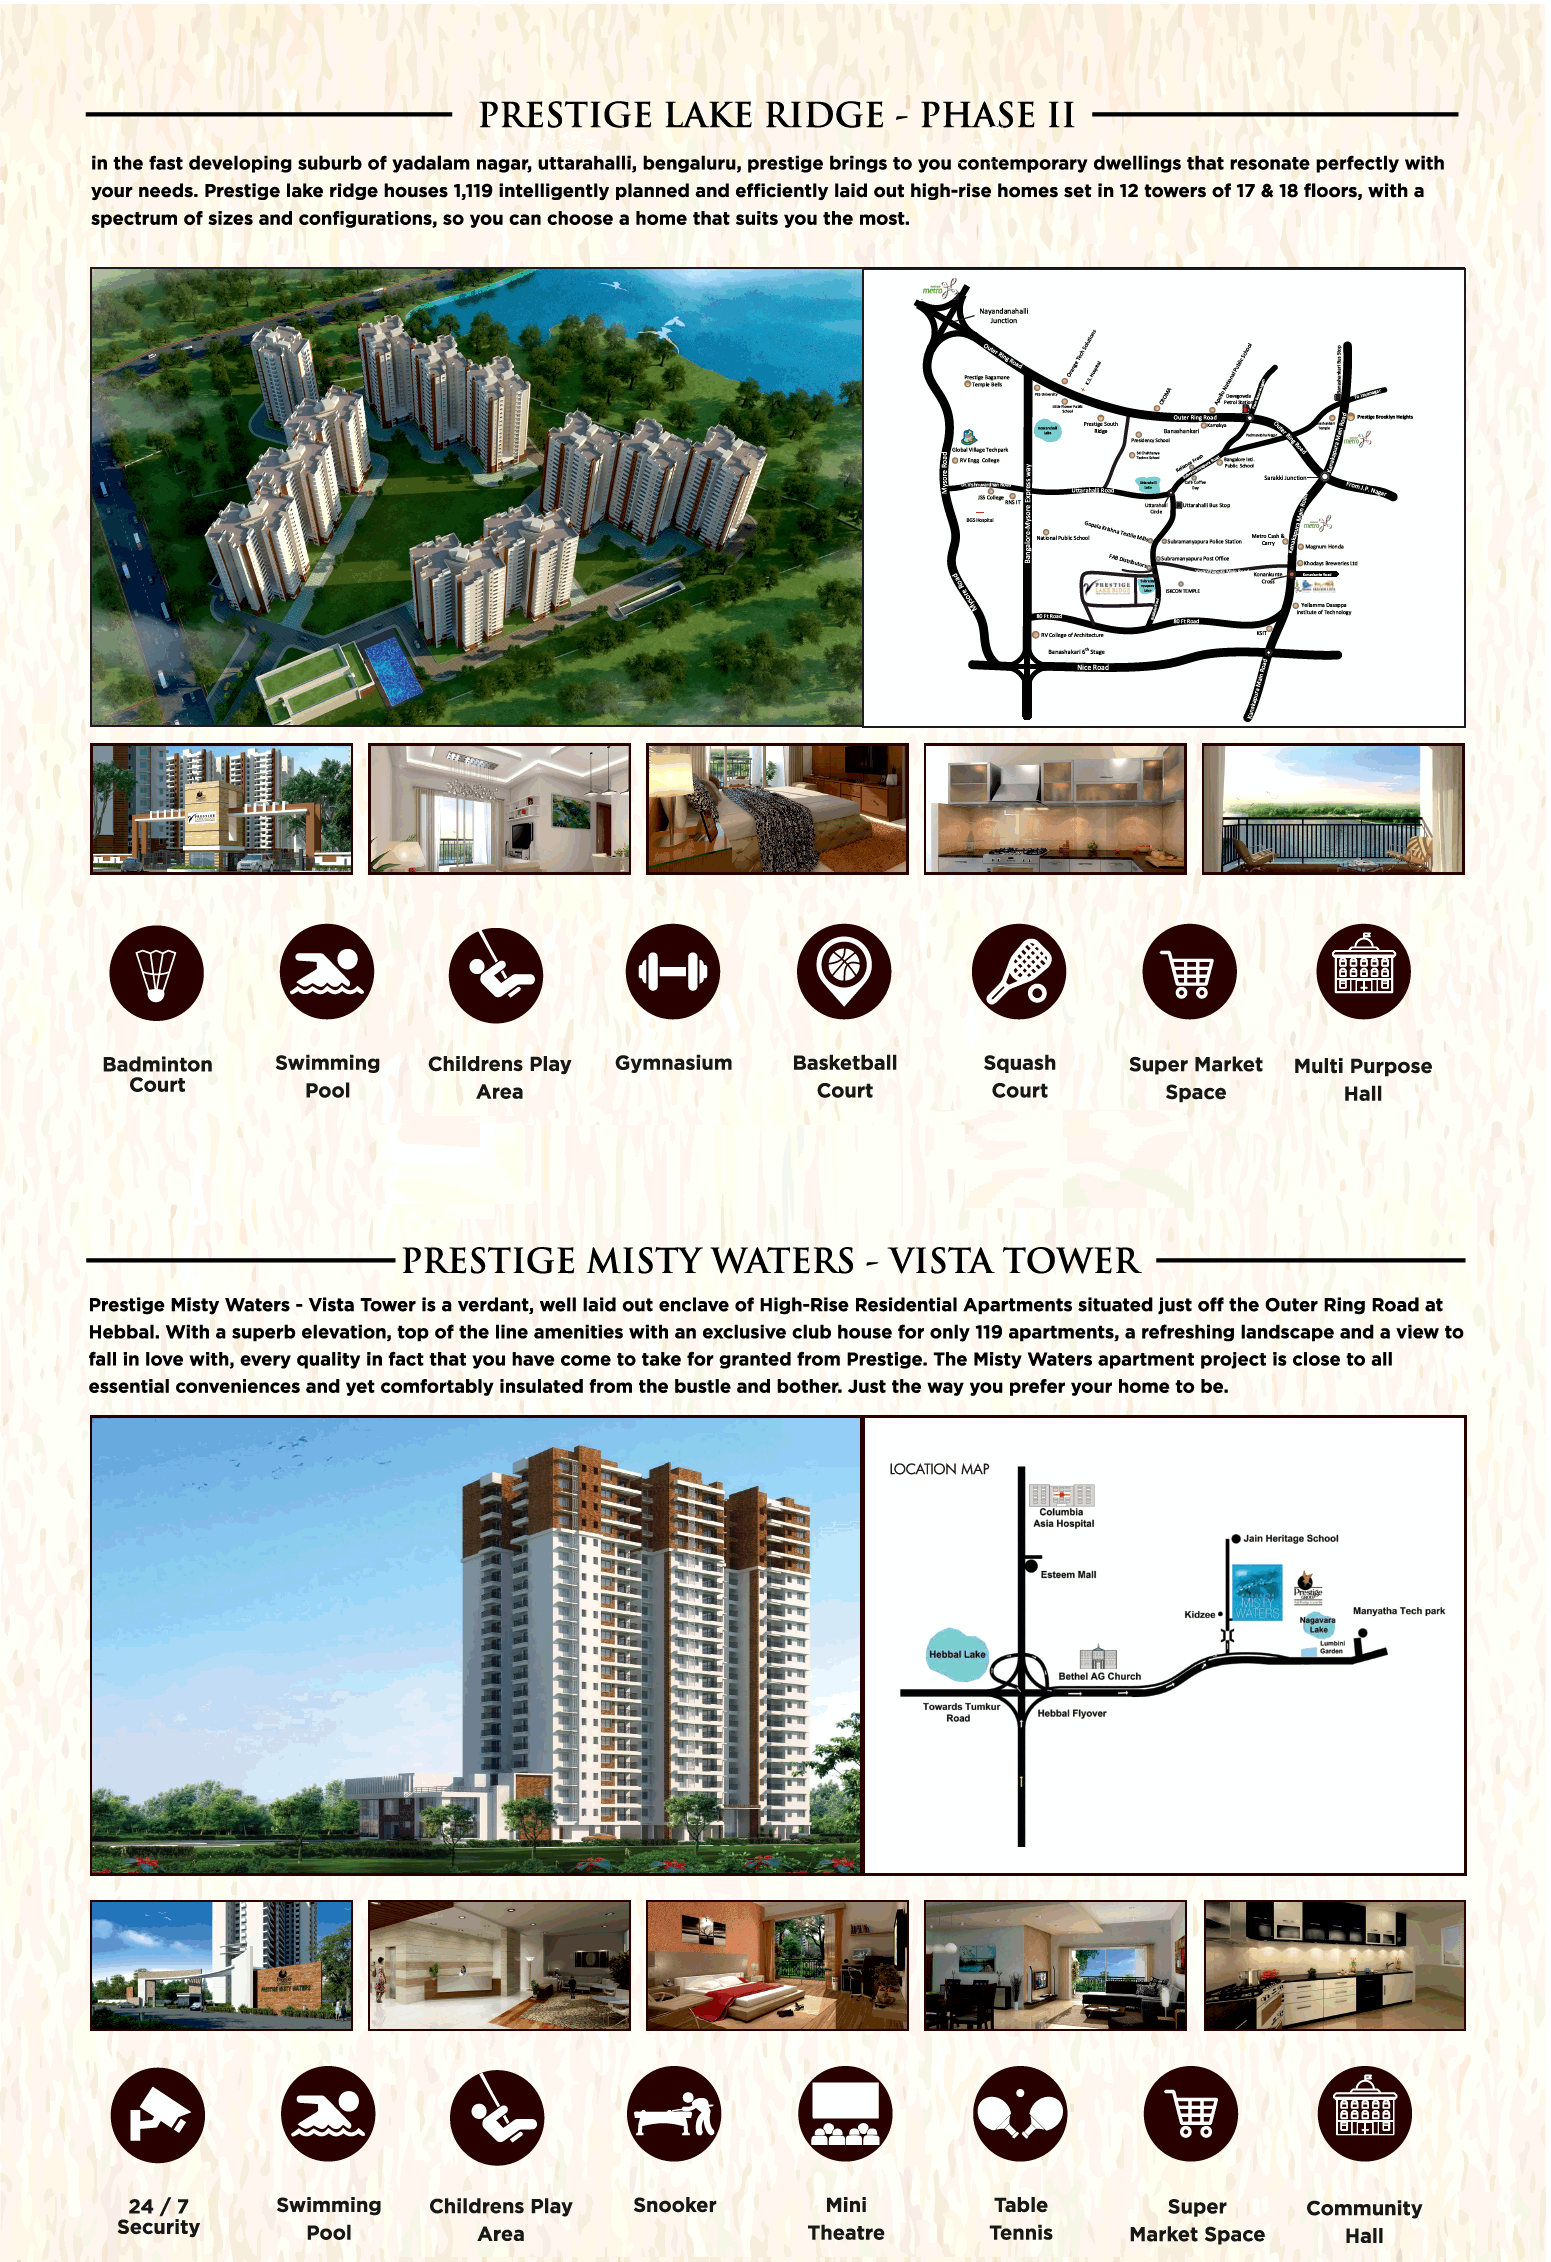 Introducing phase 2 at Prestige Projects in Bangalore